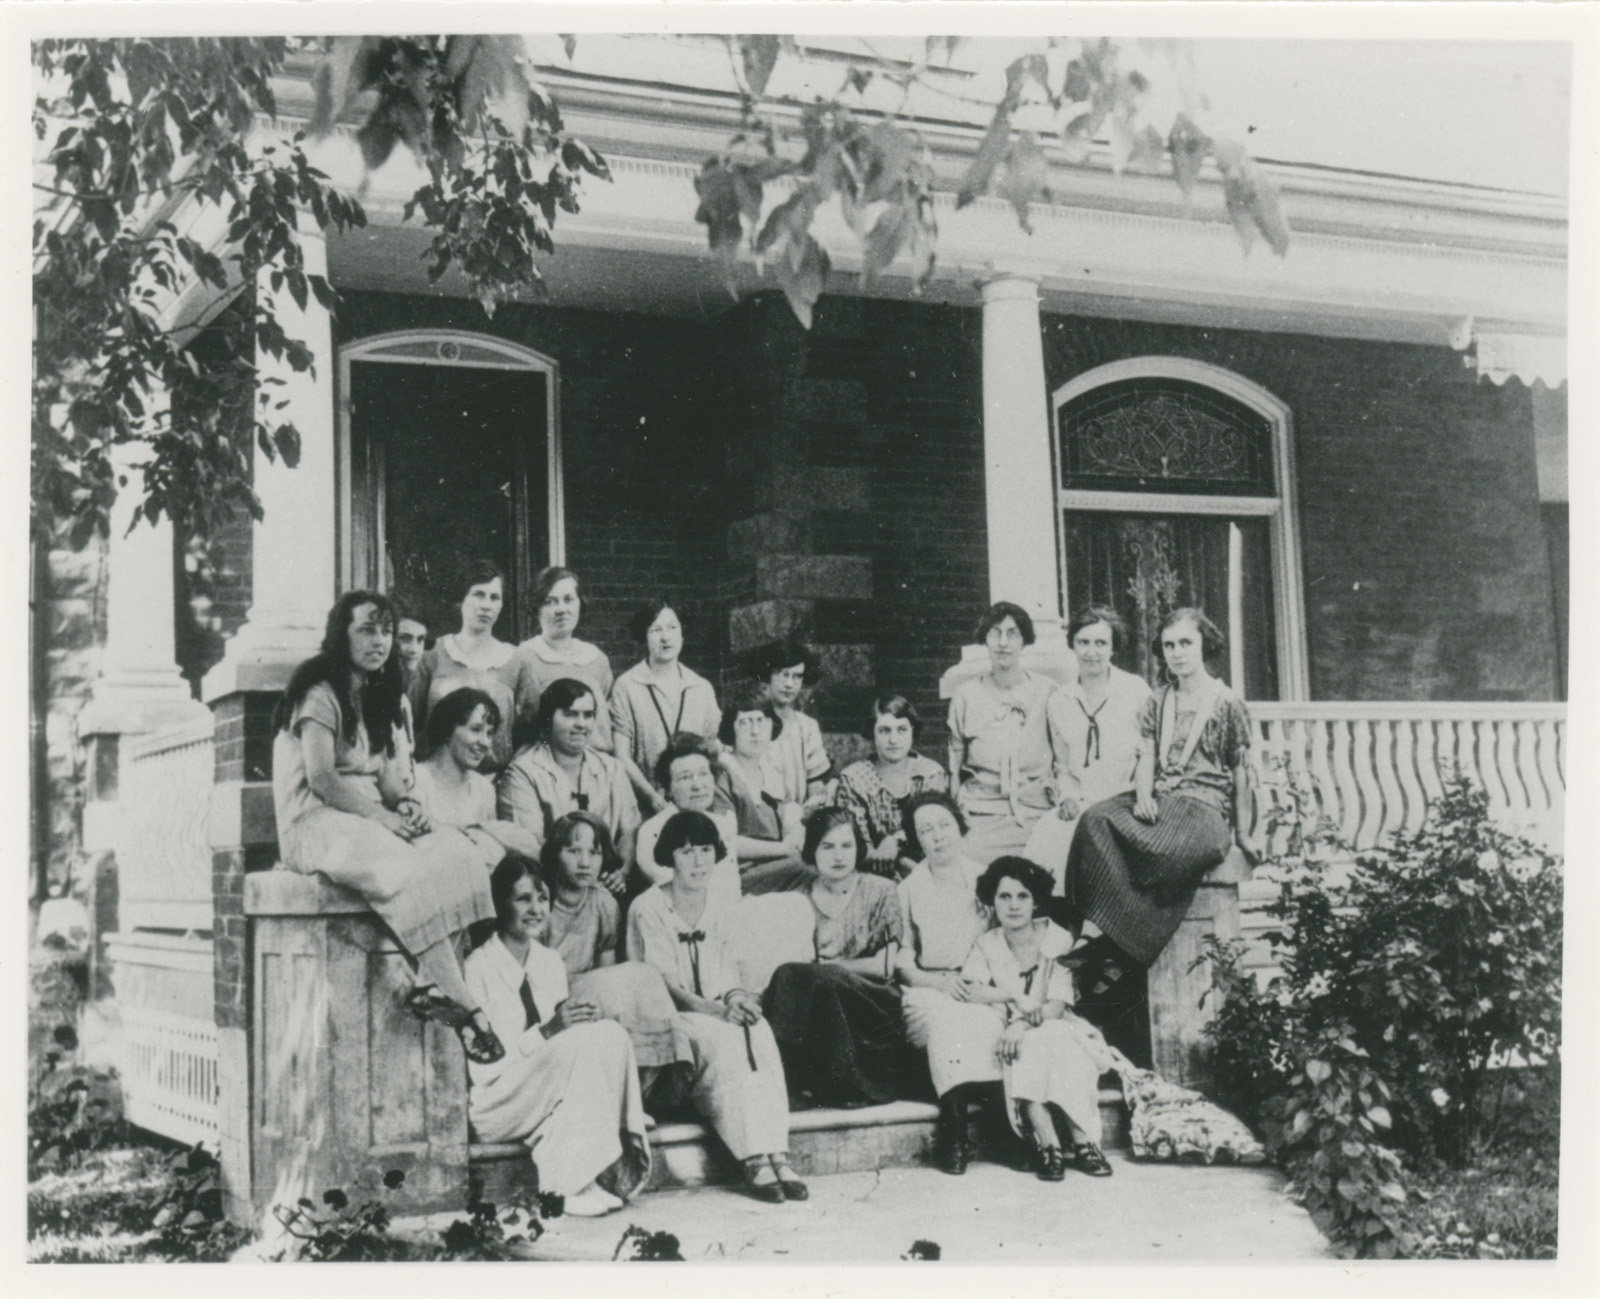 Mrs. Pierce and her Sunday School class in front of the Dan Davison House